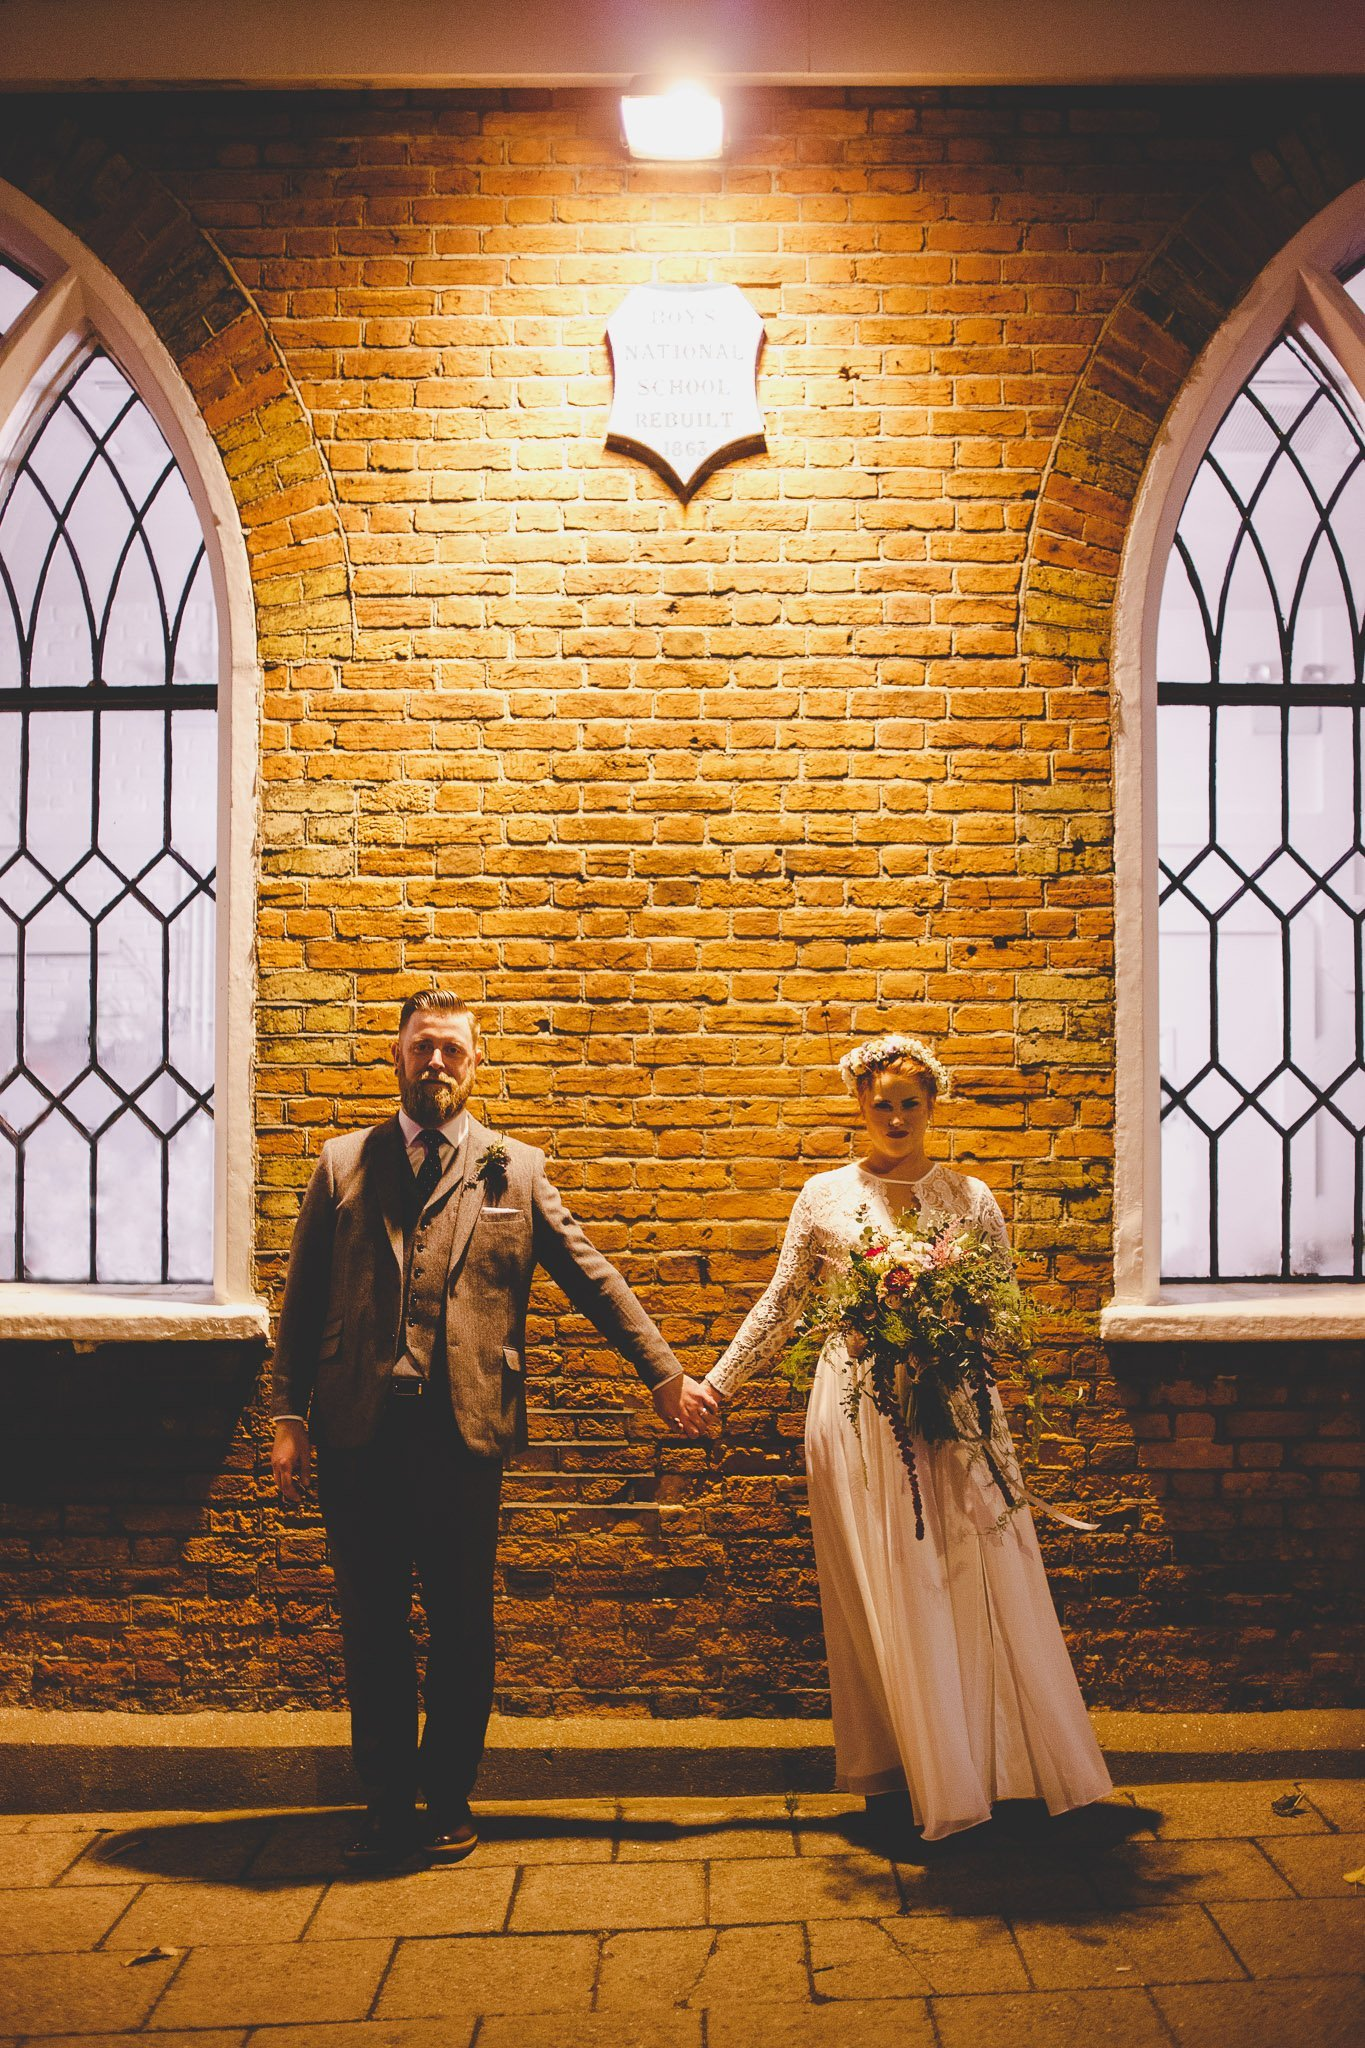 A newly married couple pose for their wedding portrait outside the Old Parish Rooms in Essex. They stand holding hands in front of a brick wall. Photography by thatthingyoupluck.